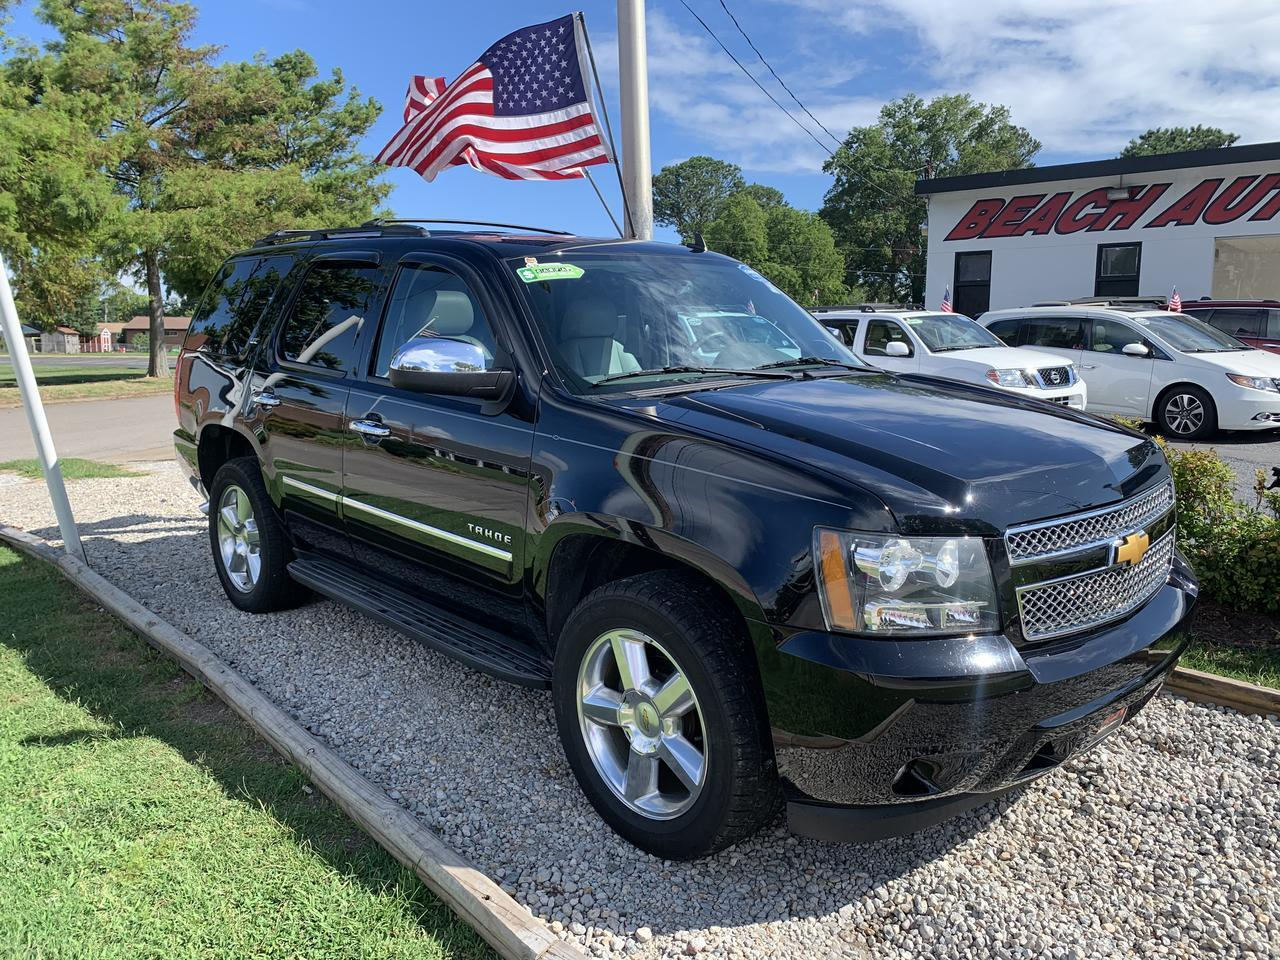 2014 CHEVROLET TAHOE LTZ 4X4, WARRANTY, LEATHER, SUNROOF, NAV, HEATED/COOLED SEATS, CAPTAINS CHAIRS, DVD PLAYER! Norfolk VA